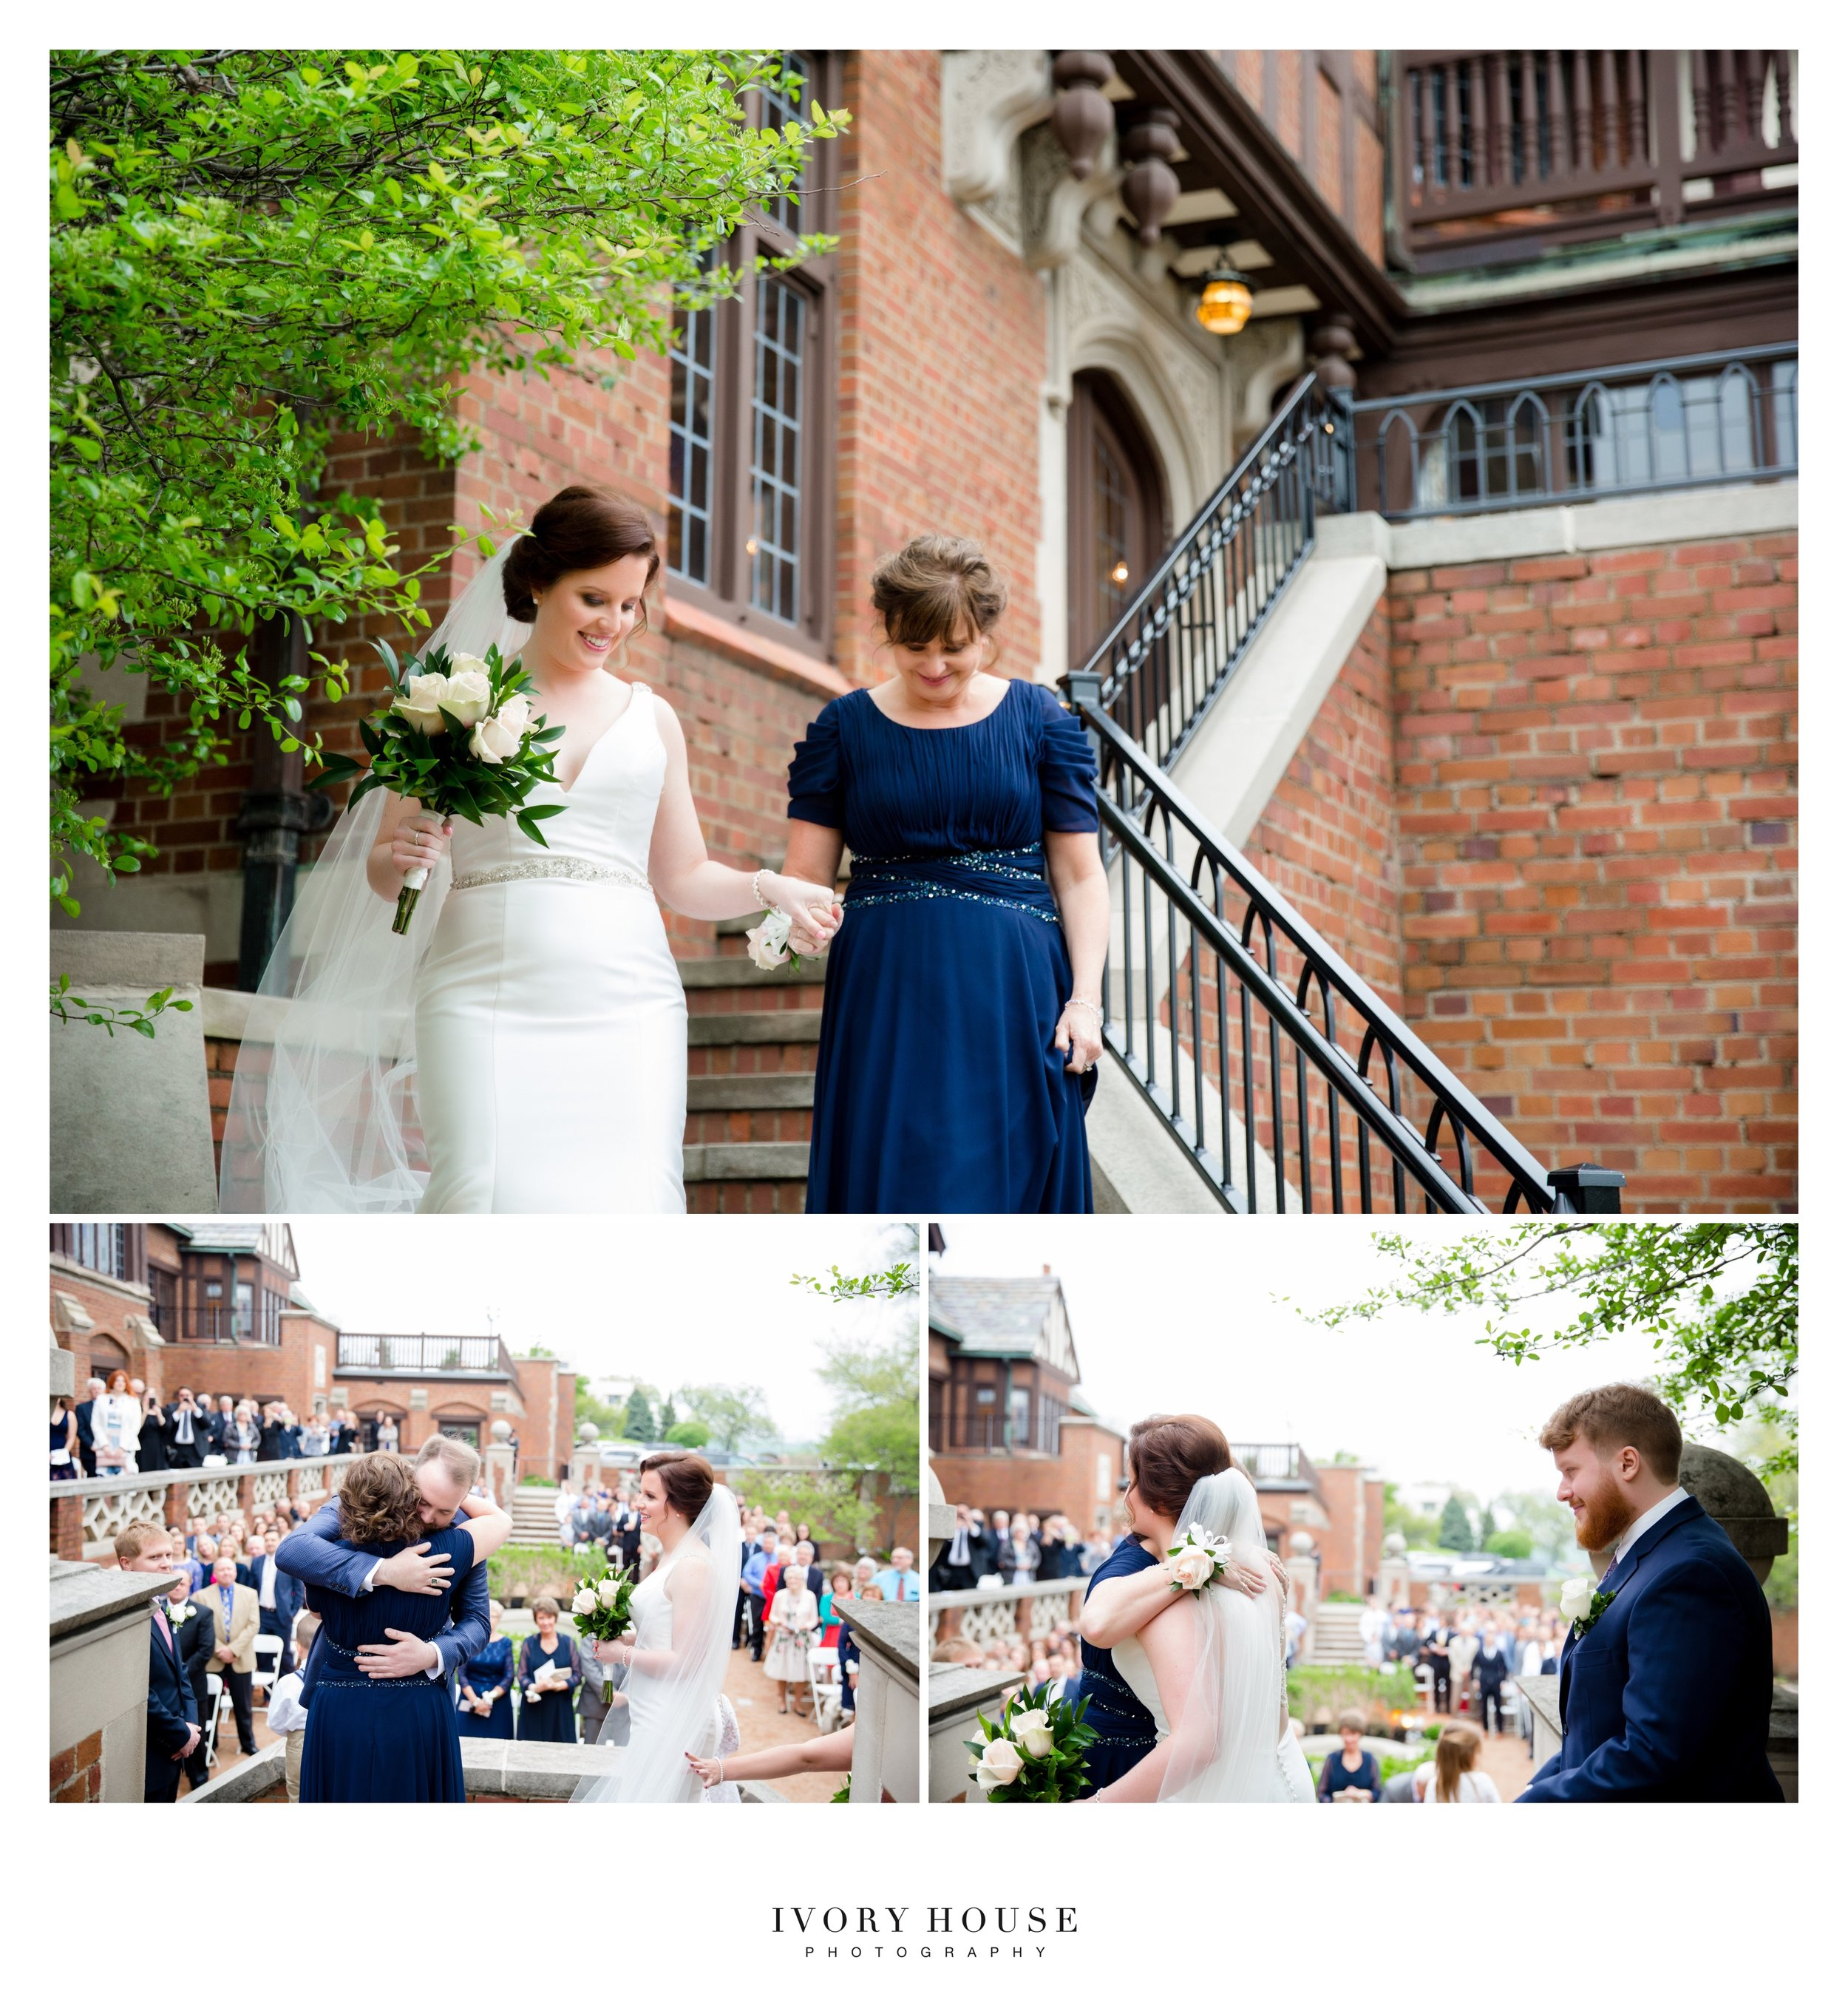 Retzlaff Wedding Ivory House Photography.jpg